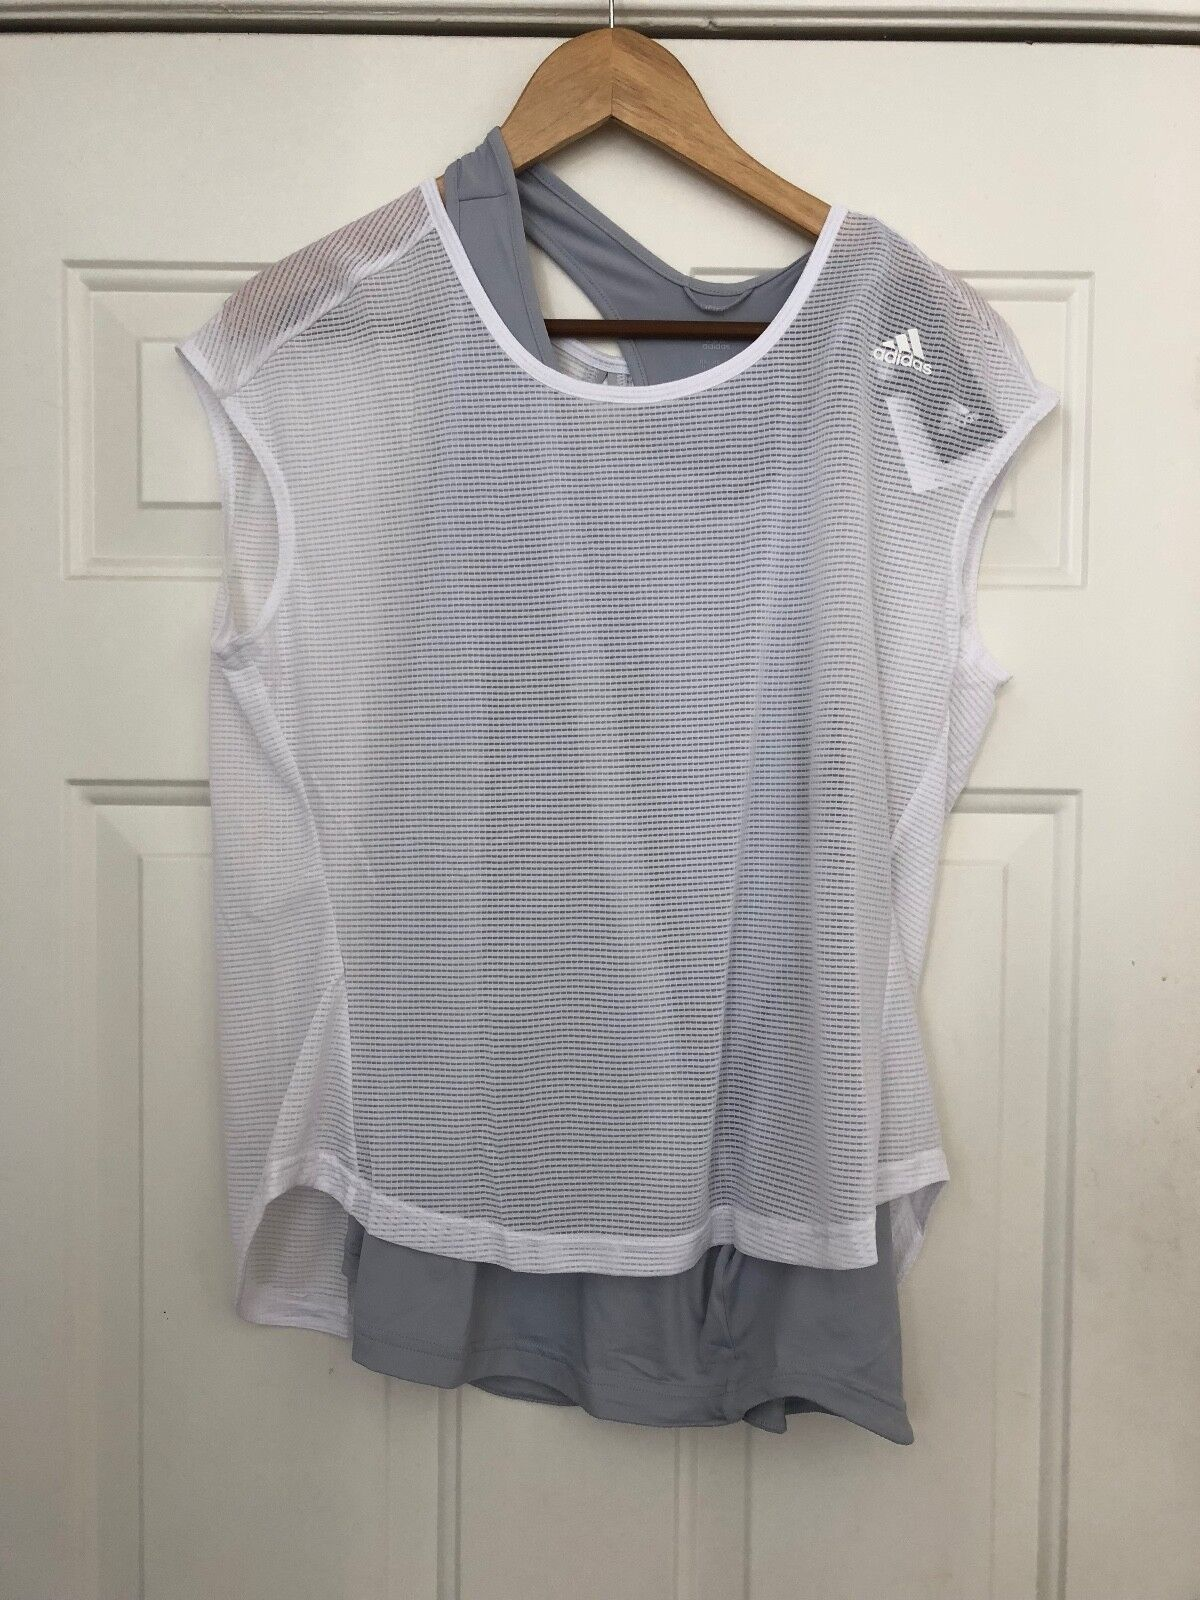 NWT WOMENS ADIDAS TKO 2 LAYER TANK TOP SIZE MEDIUM FREE GIFT W PURCHASE KUC514